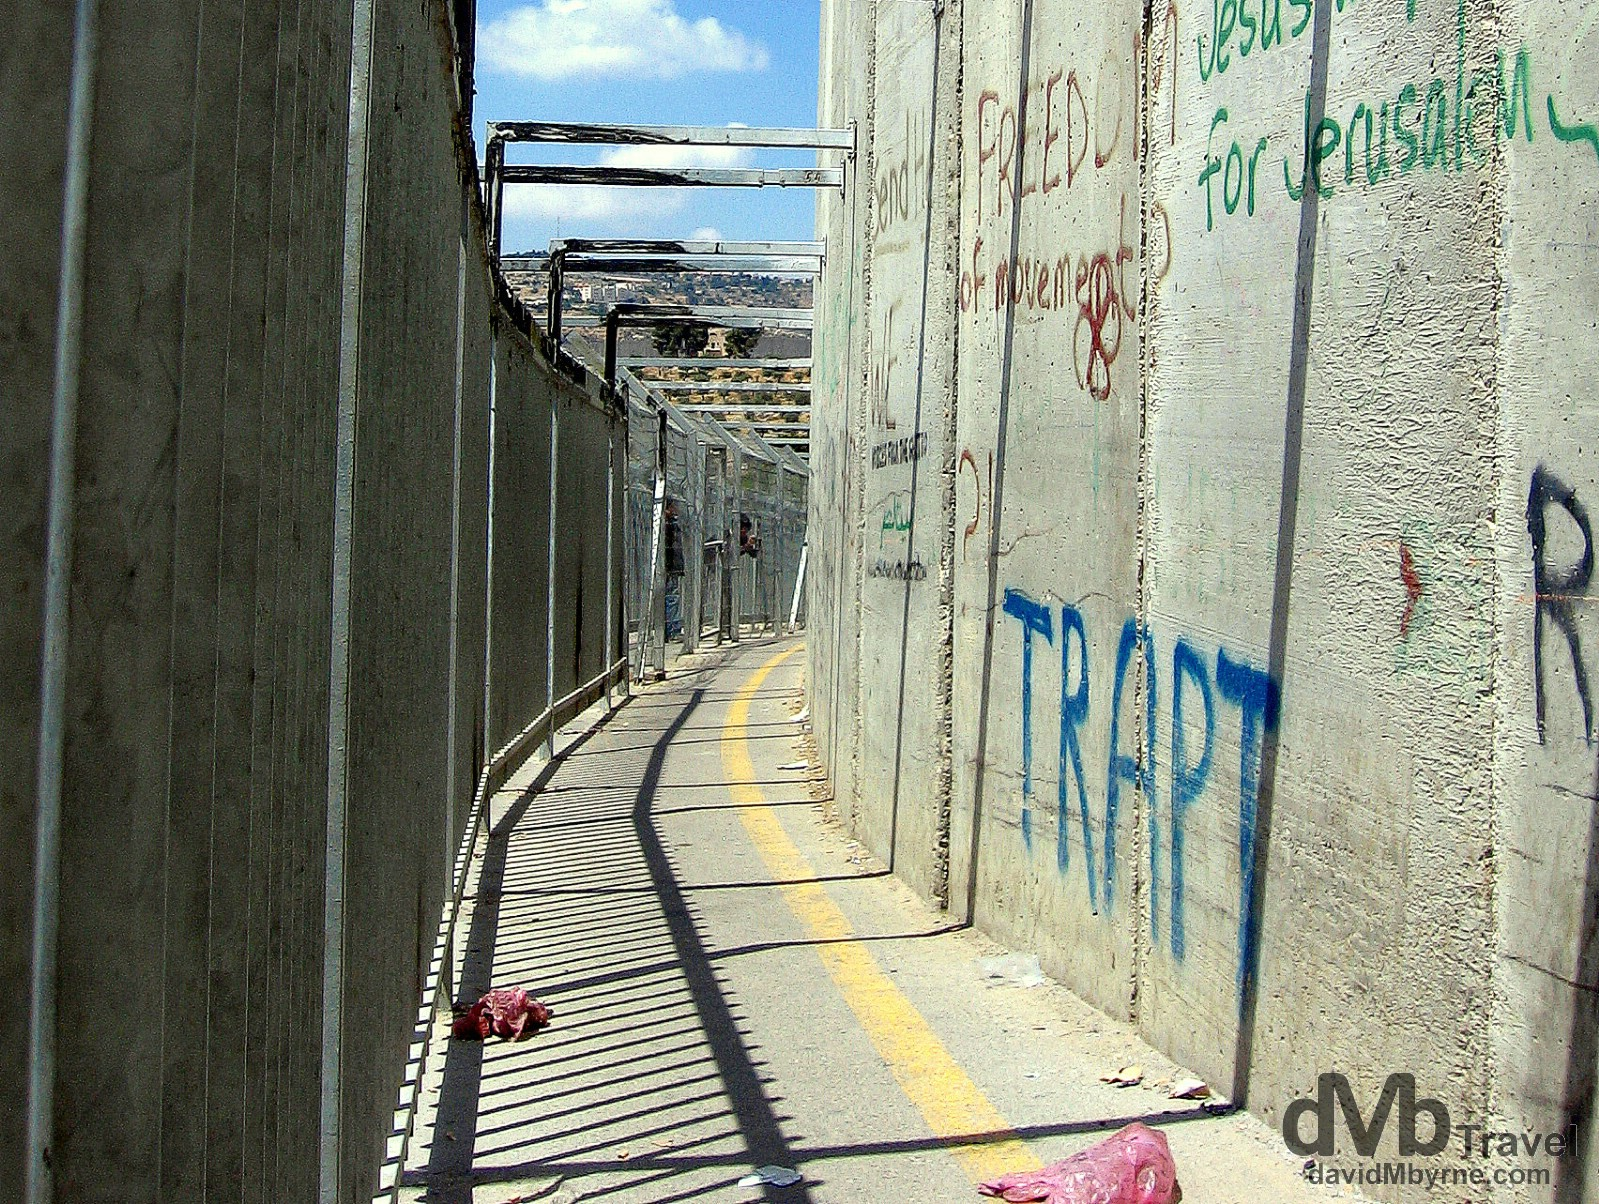 A section of the heavily guarded wall separating the Palestinian West Back from Israel. May 2, 2008.